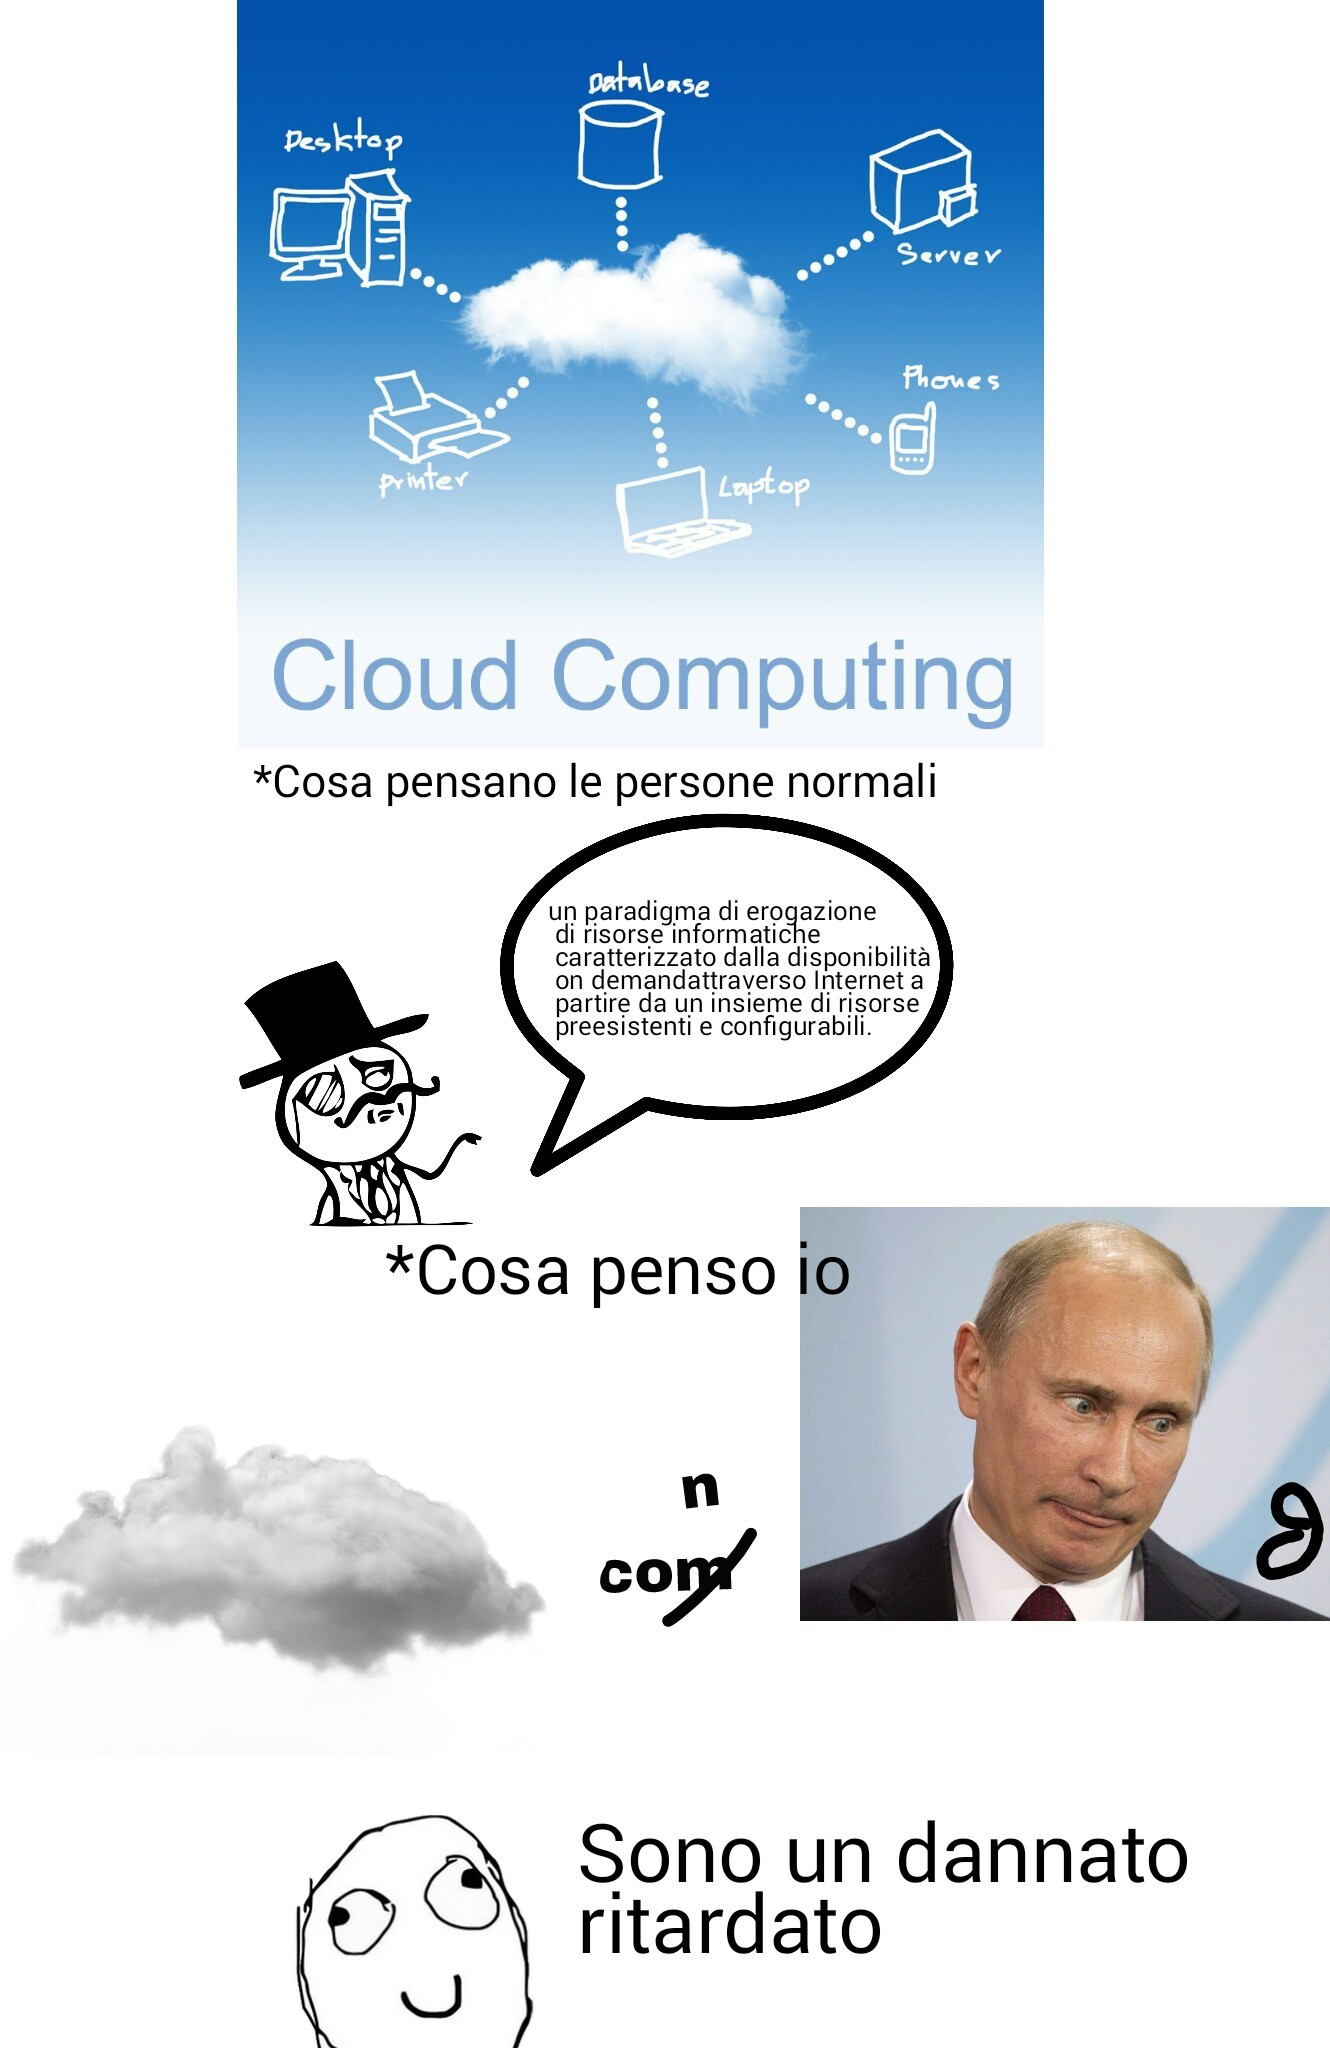 Cloudcomputing - meme